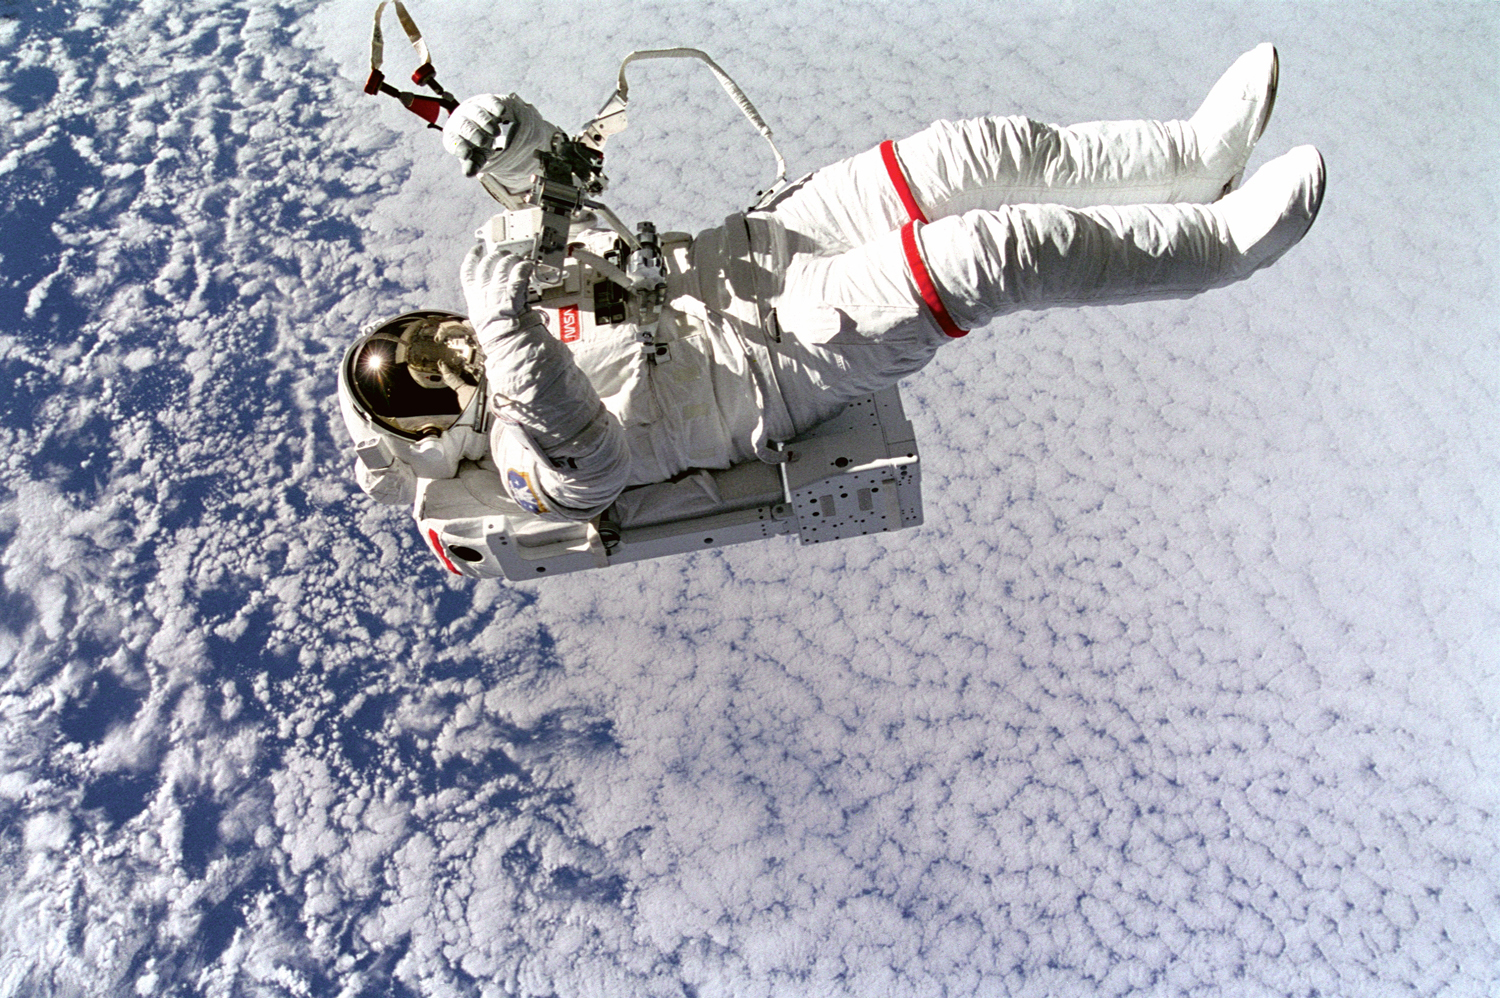 Astronaut Biography: Andre Kuipers